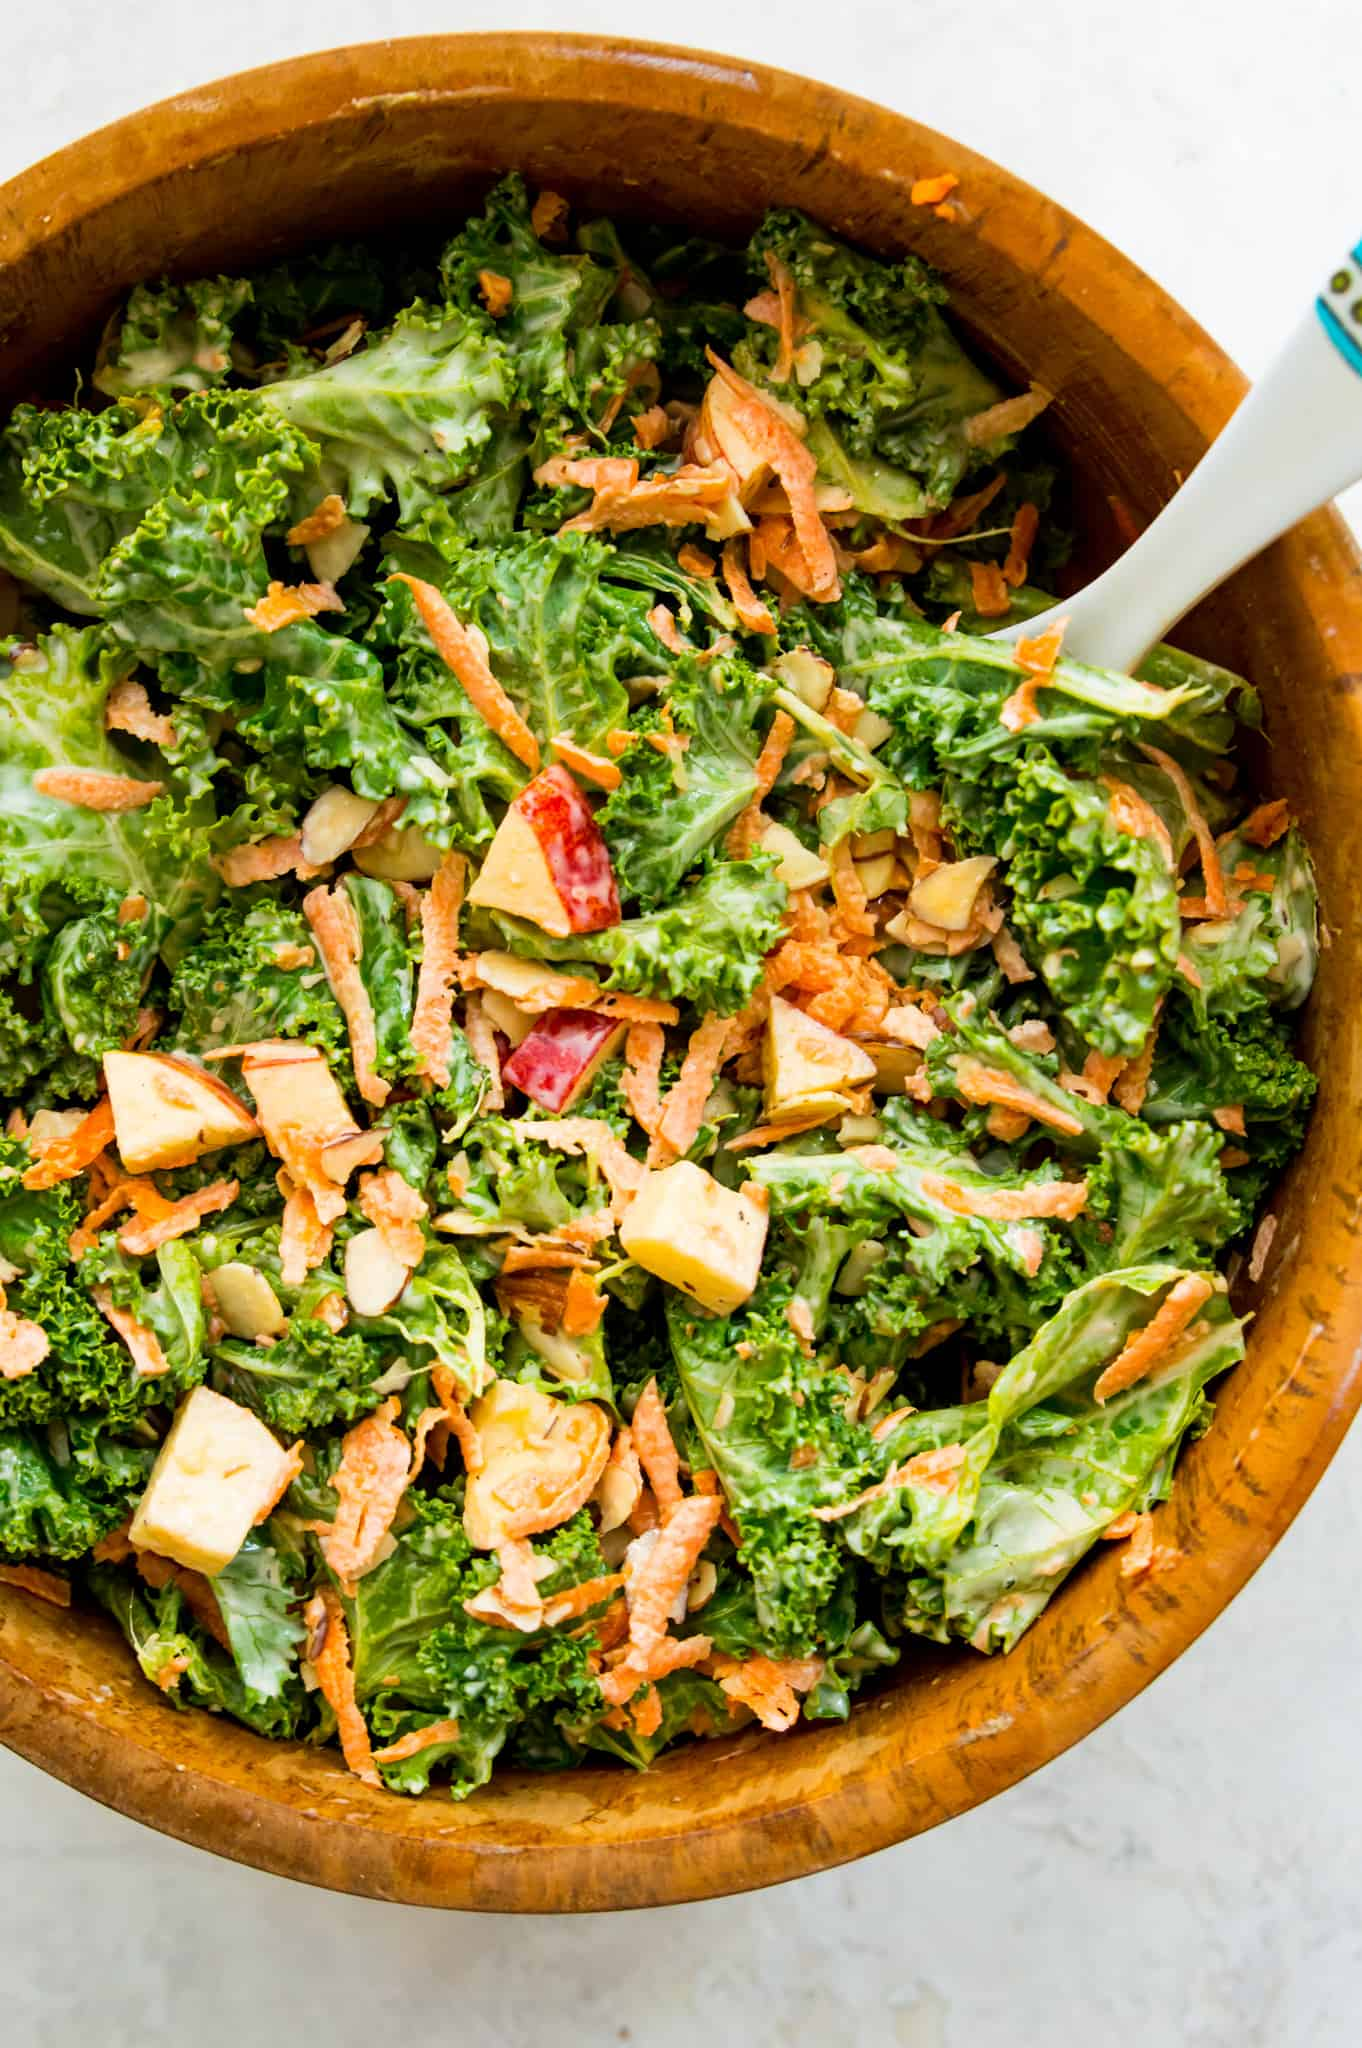 Bites of red apple, carrots, slivered almonds, and fresh kale in a wooden mixing bowl with dressing | Kale Slaw with Apples